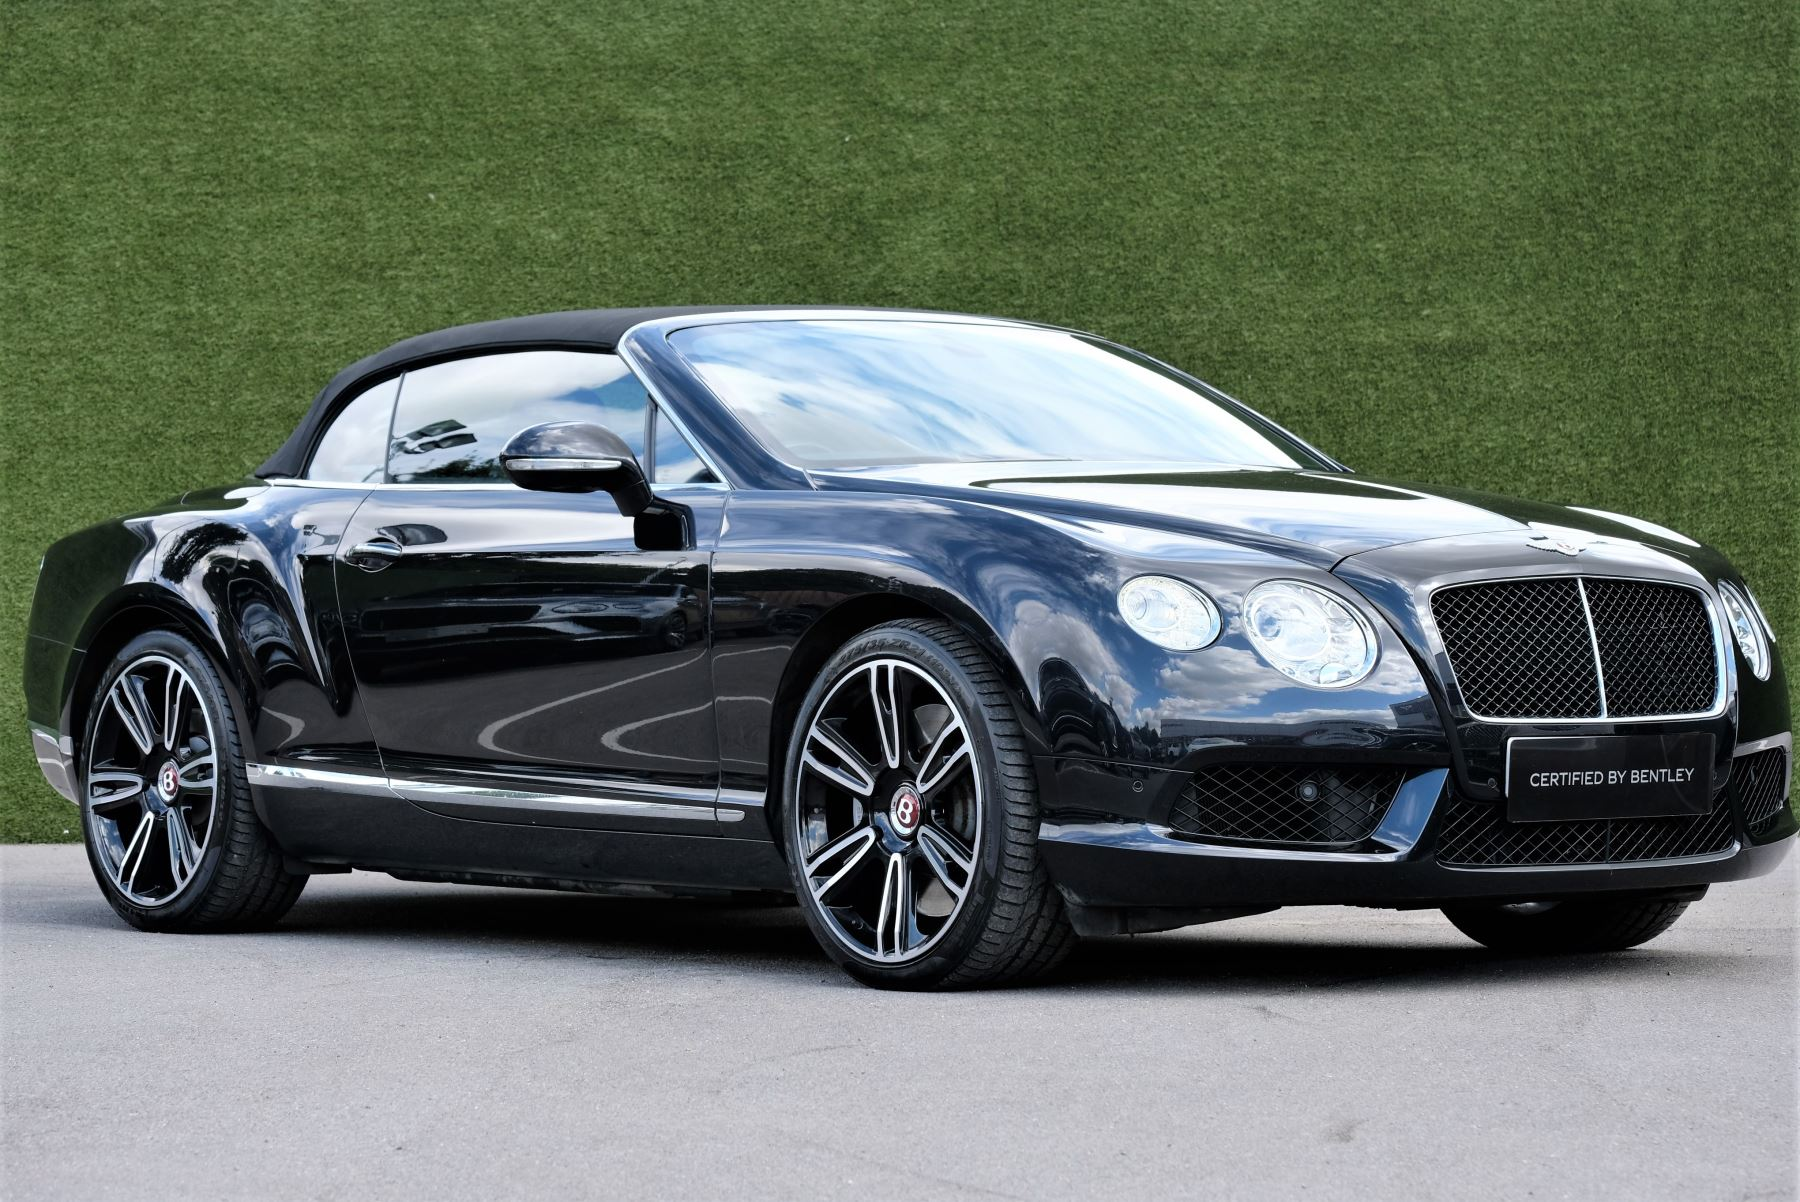 Bentley Continental GTC 4.0 V8 2dr image 1